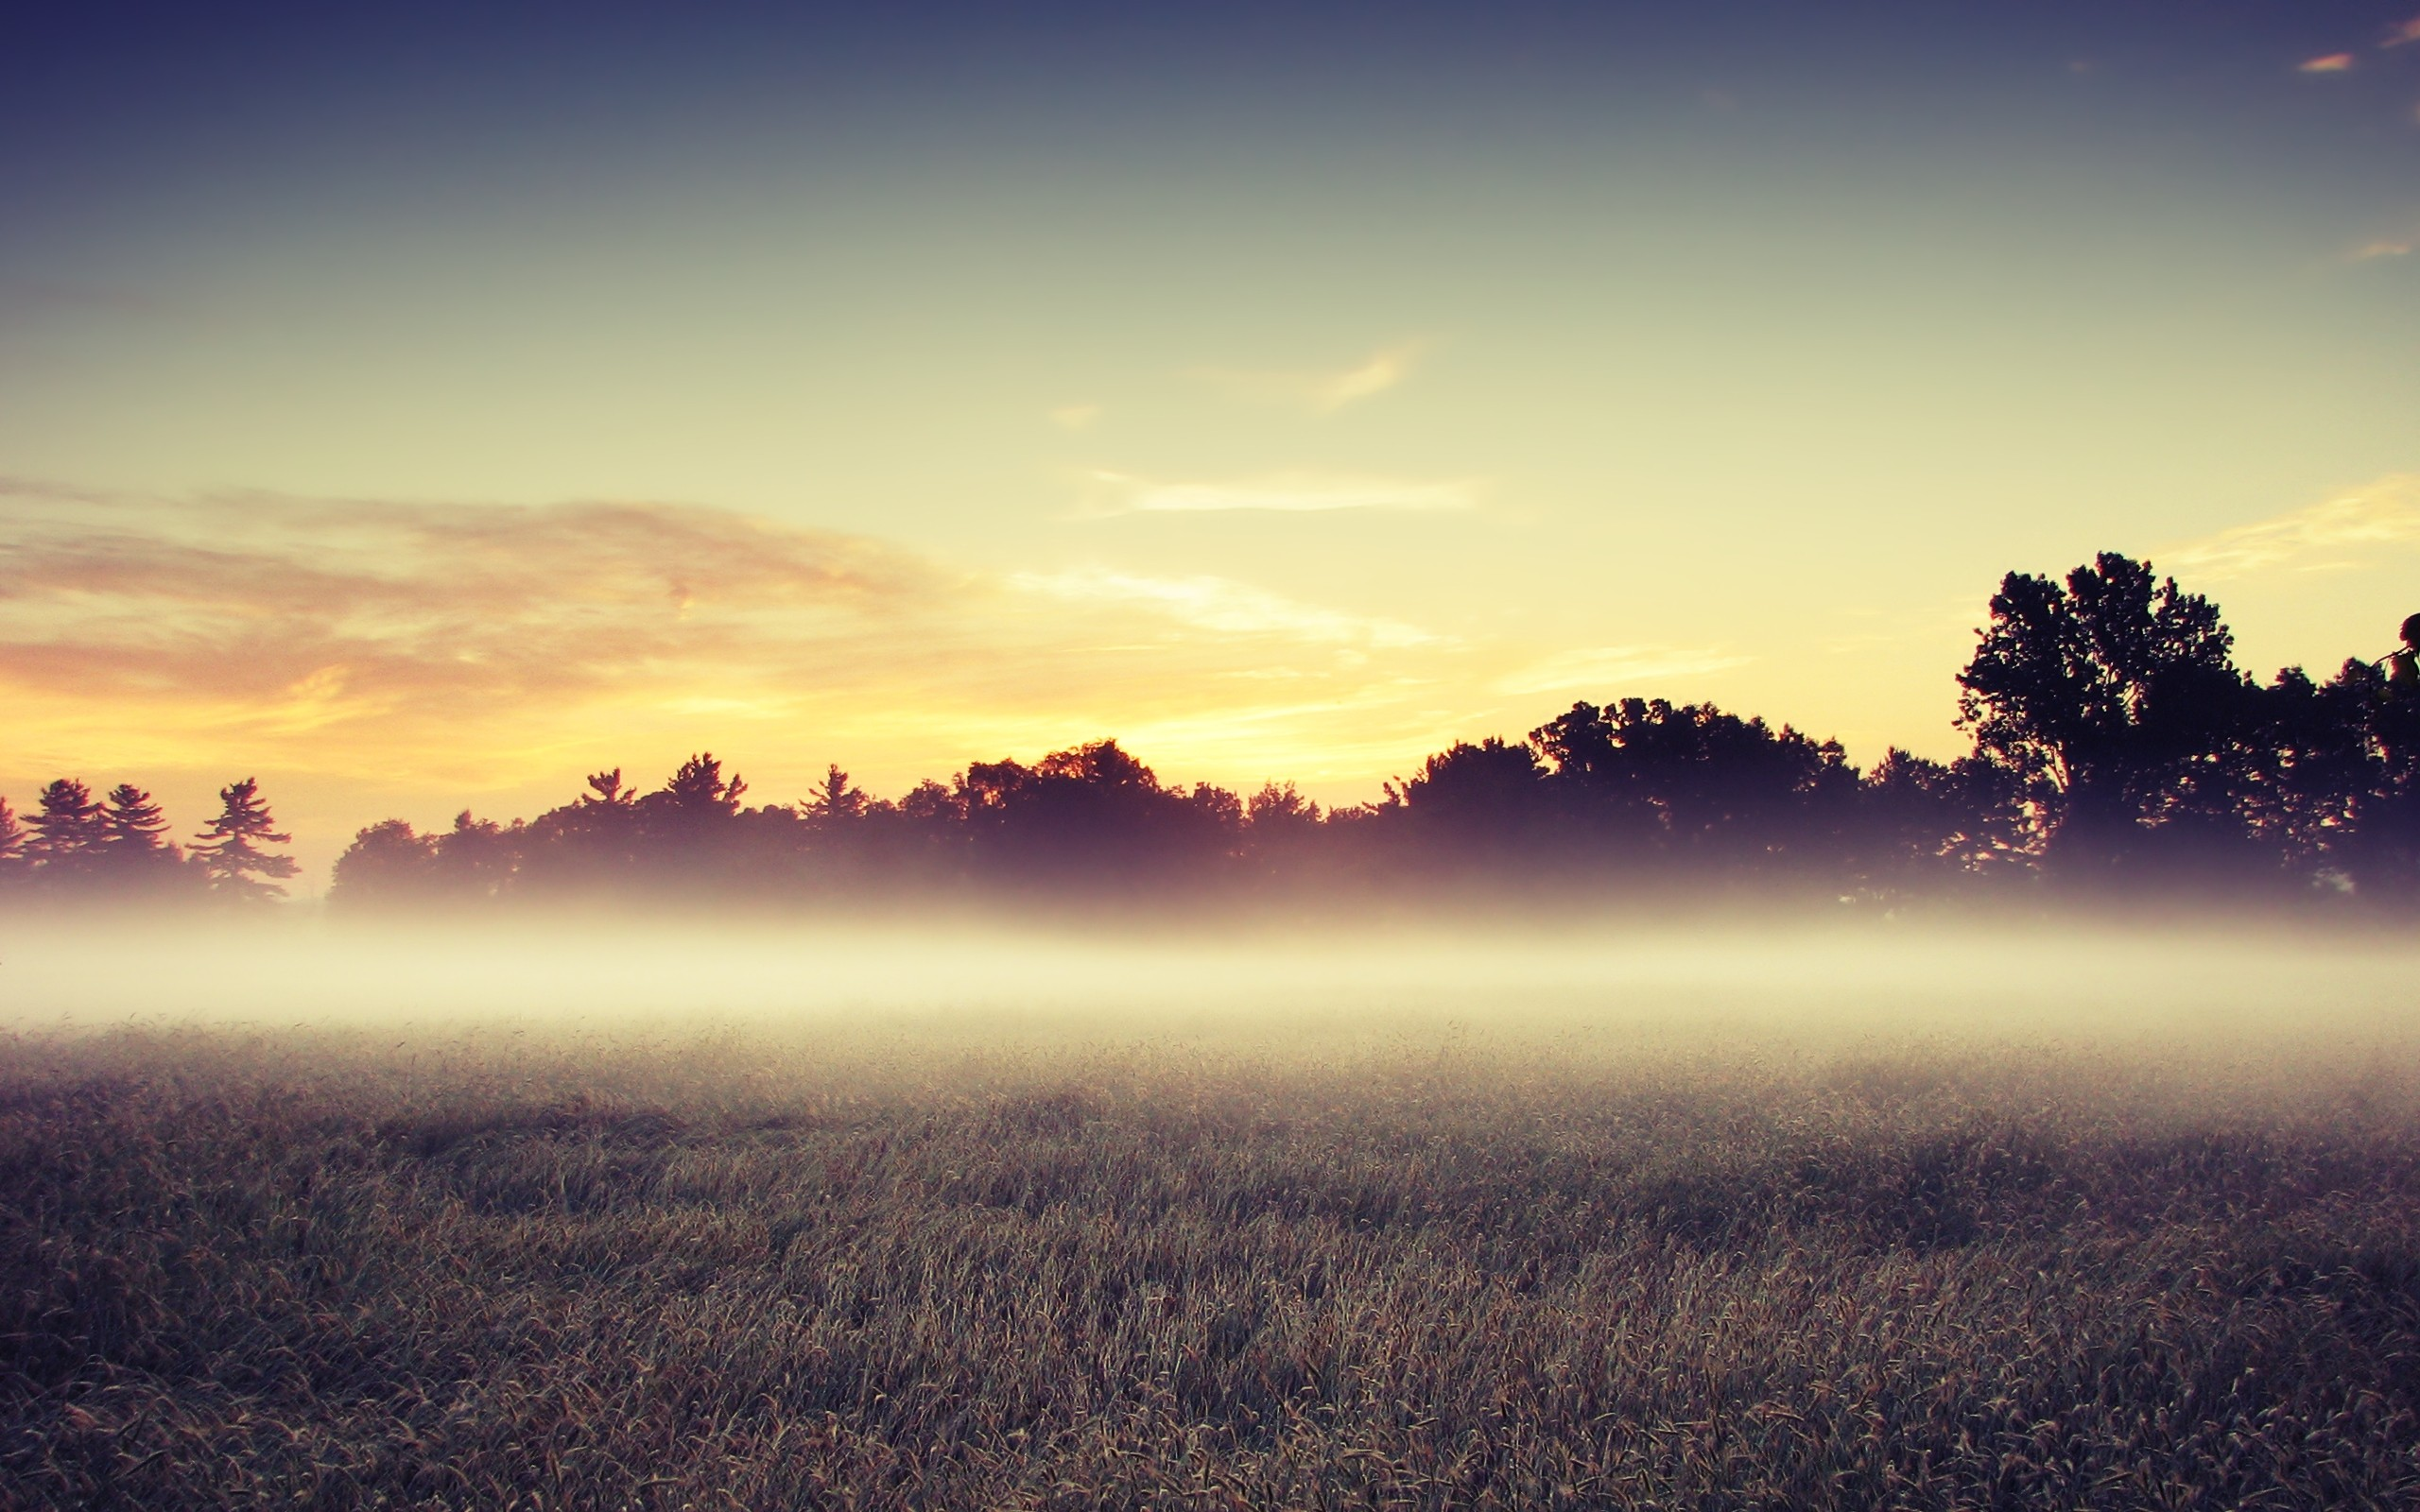 Download: Morning Mist HD Wallpaper 622